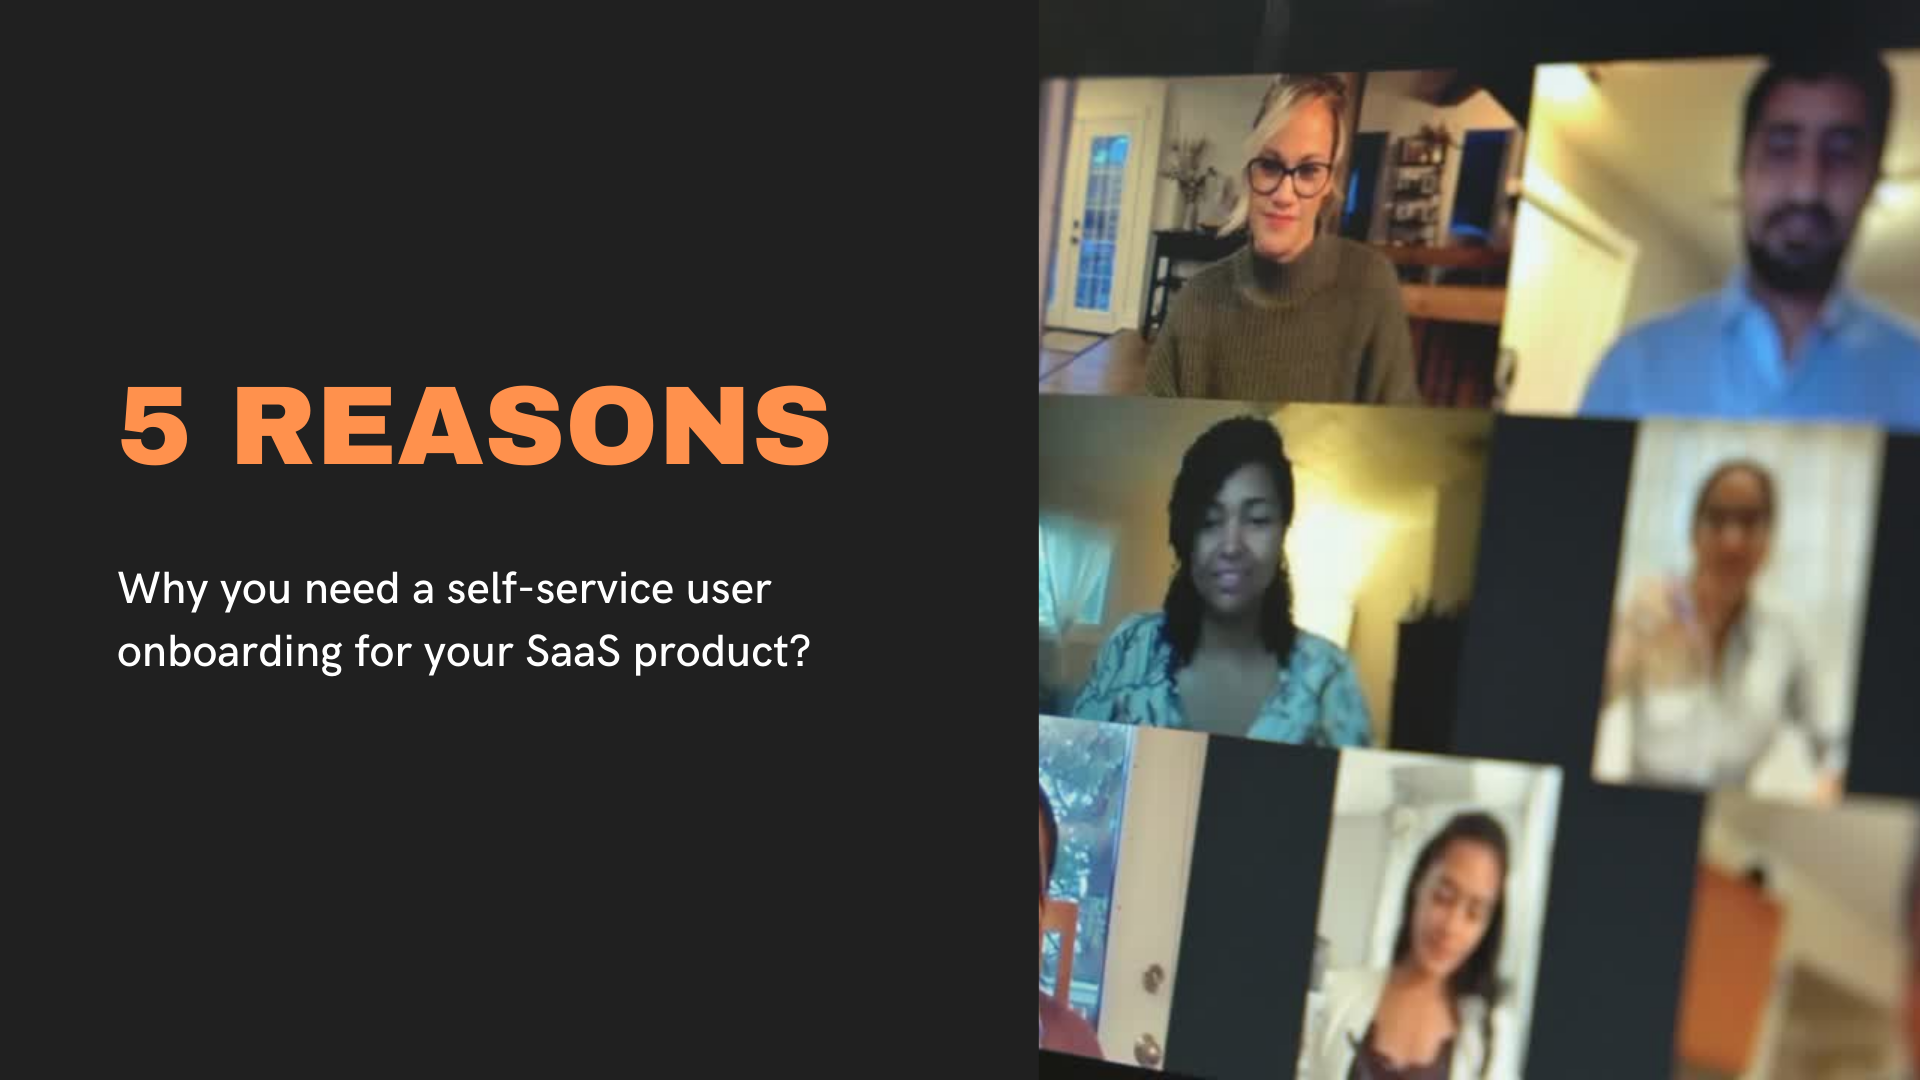 5 reasons why you need a self-service user onboarding-Final